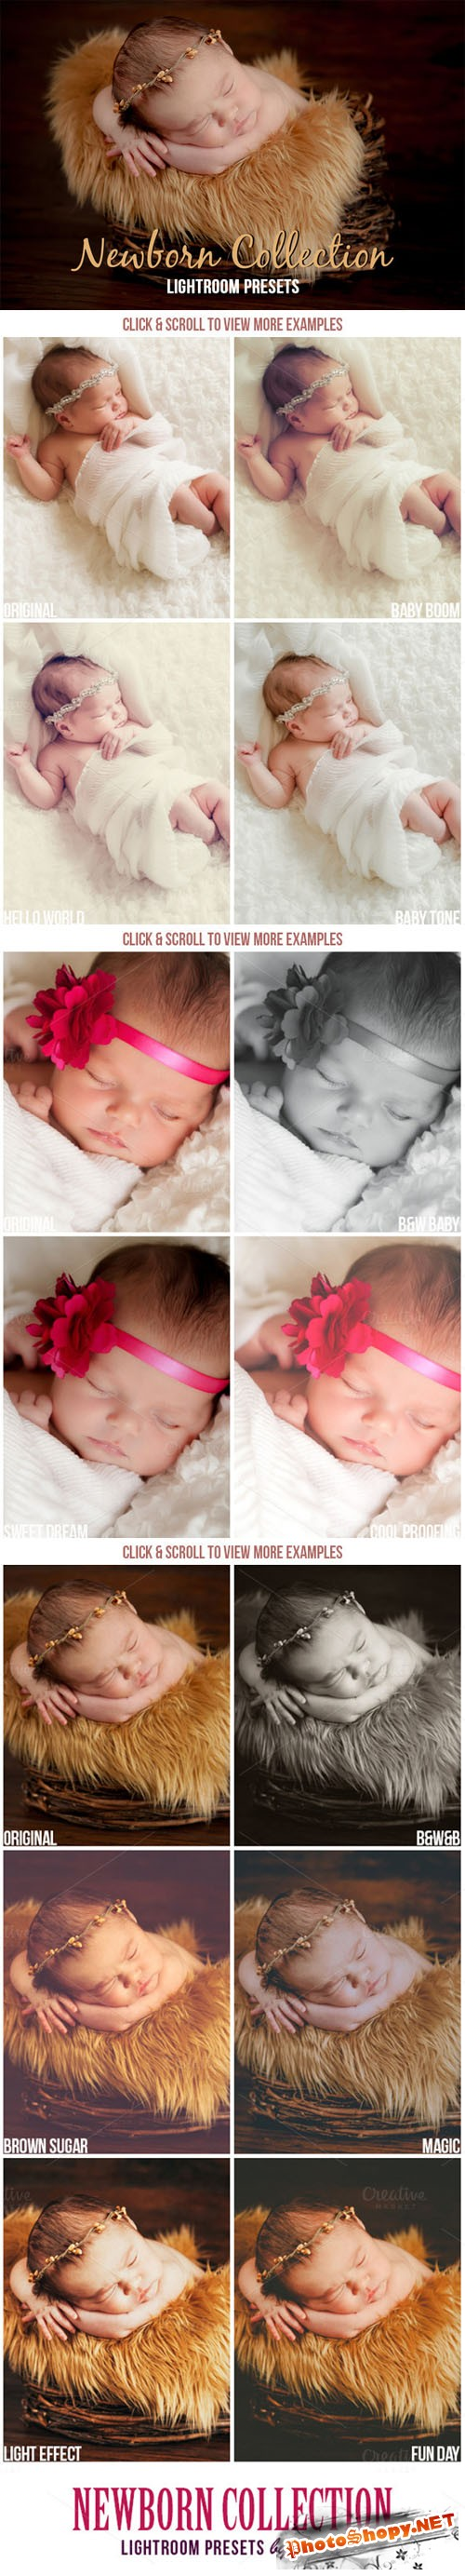 Newborn Baby Lightroom Presets - CM 143740